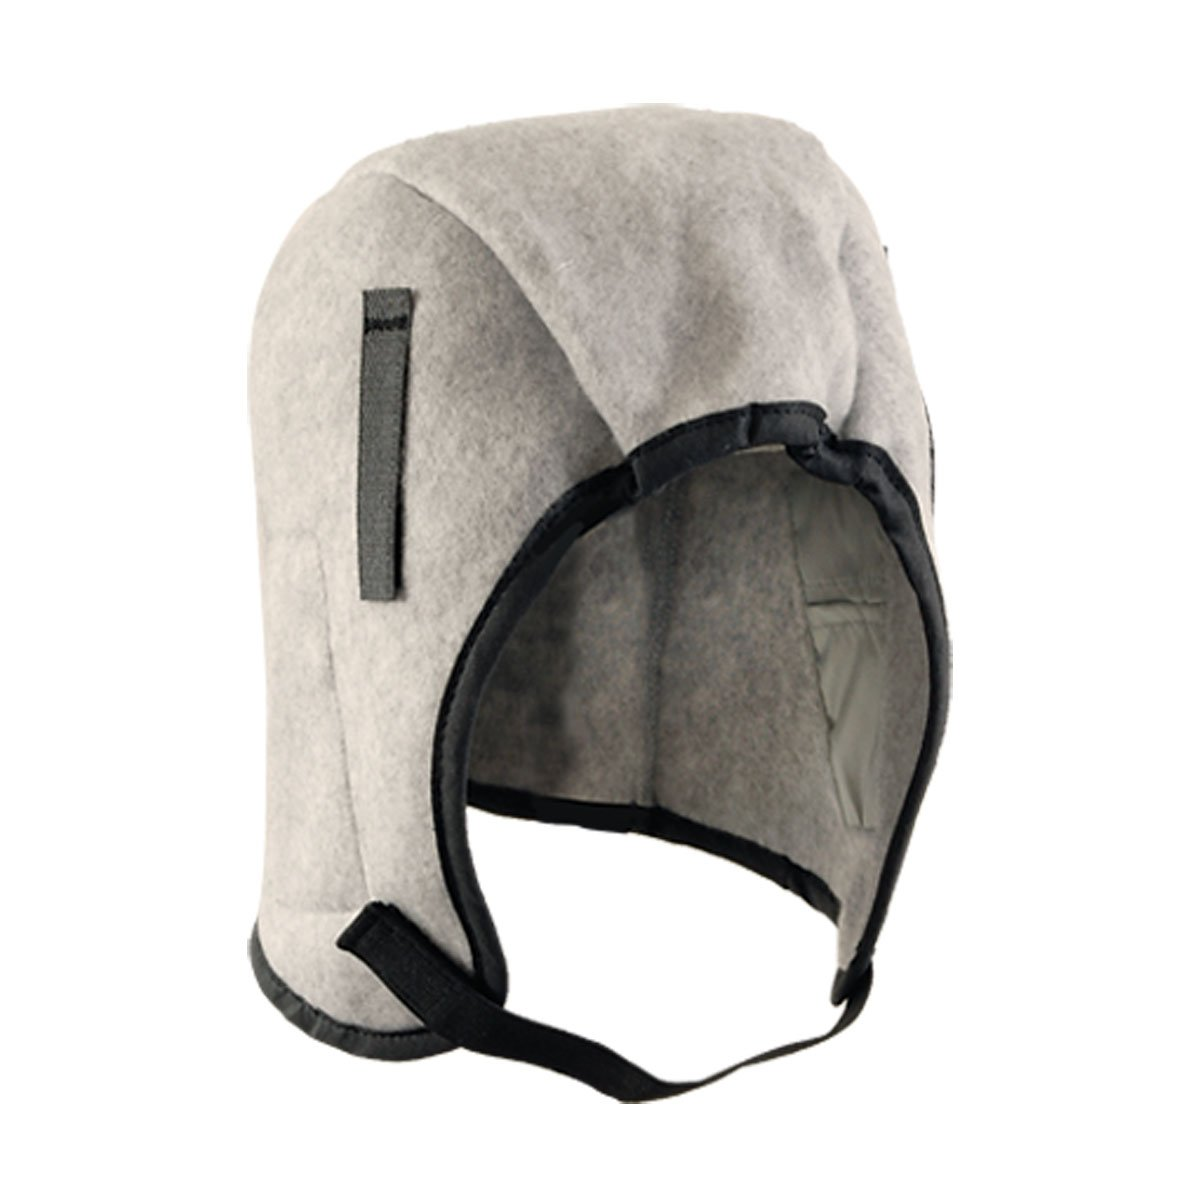 Stay Warm - PLUSH FLEECE - One Layer Mid-Length Winter Liner - RF450-24-PACK